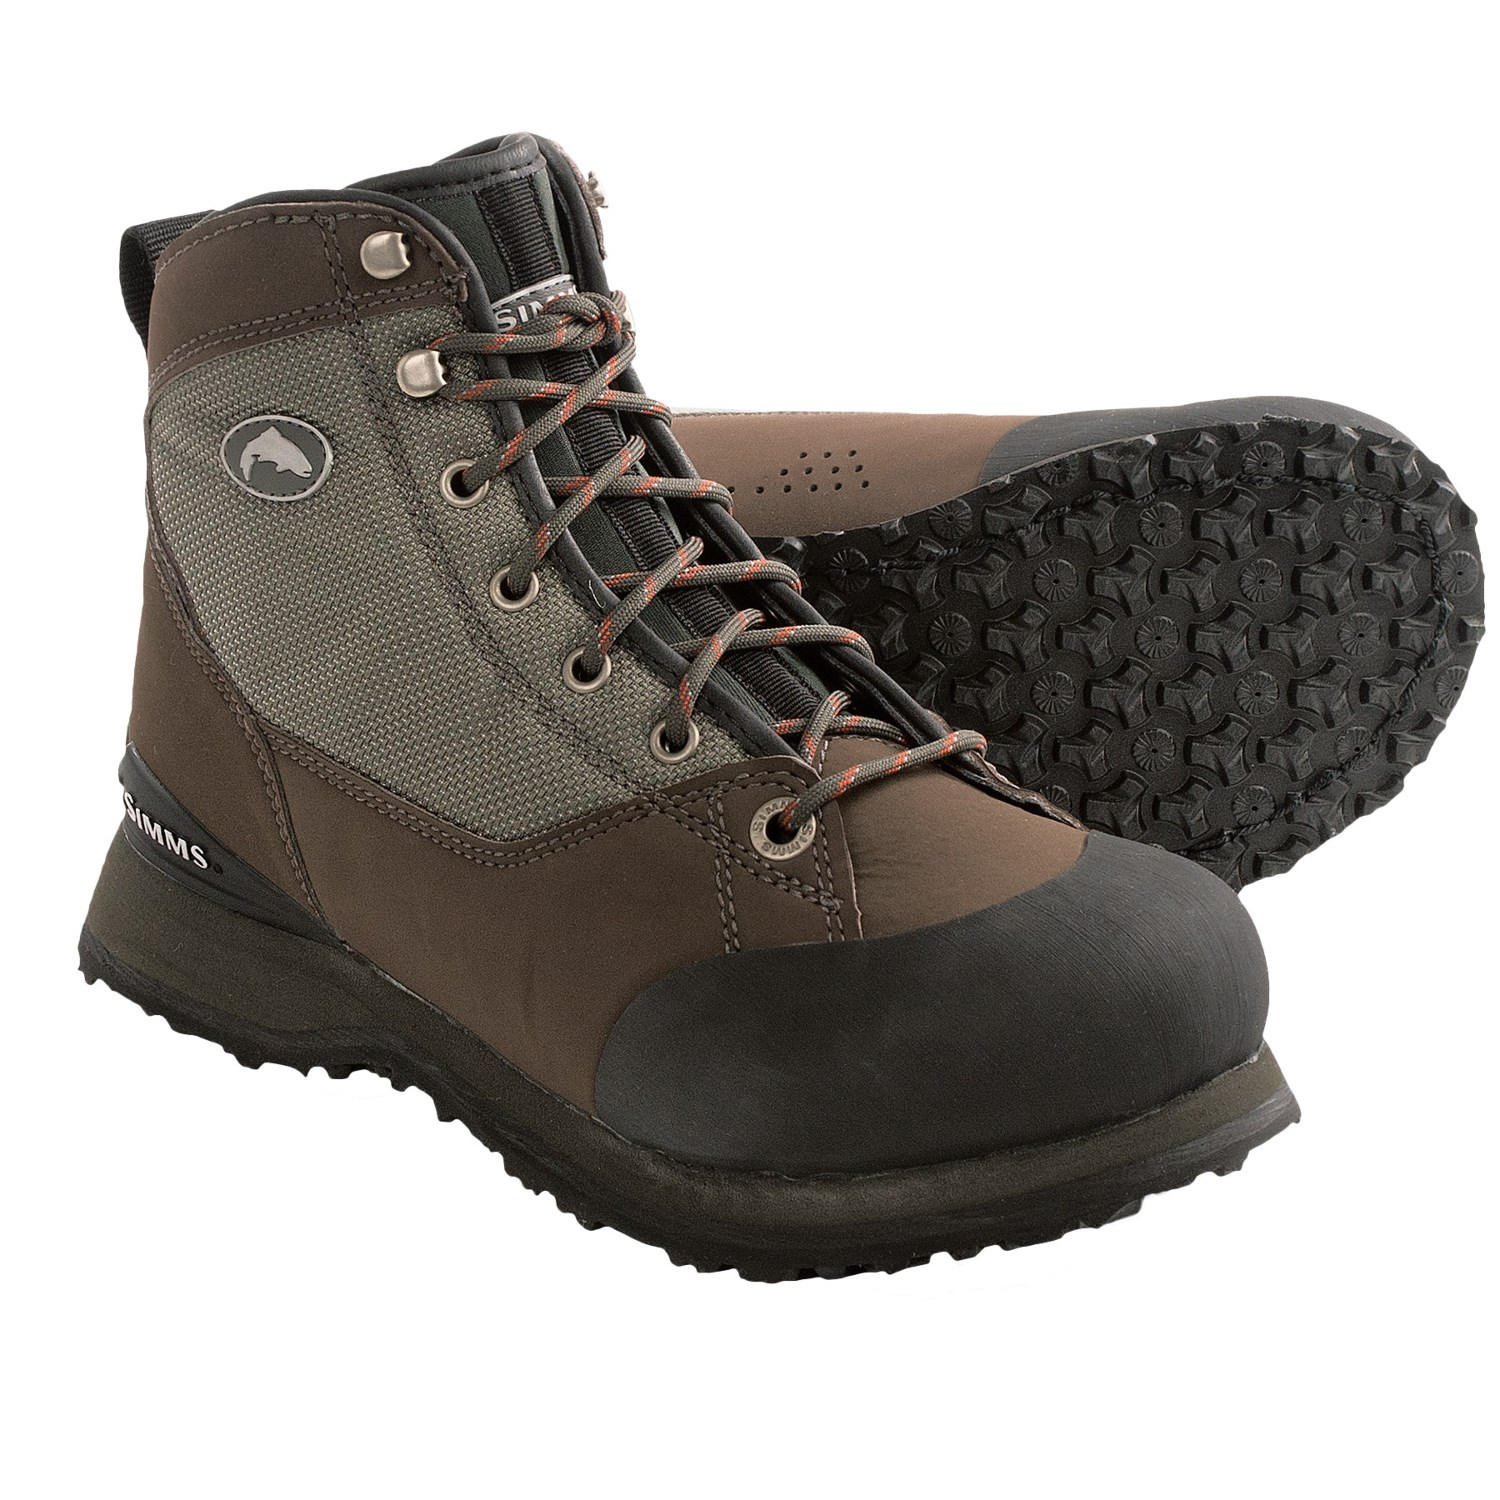 Simms headwaters wading boots for women in light brown for Womens fishing boots